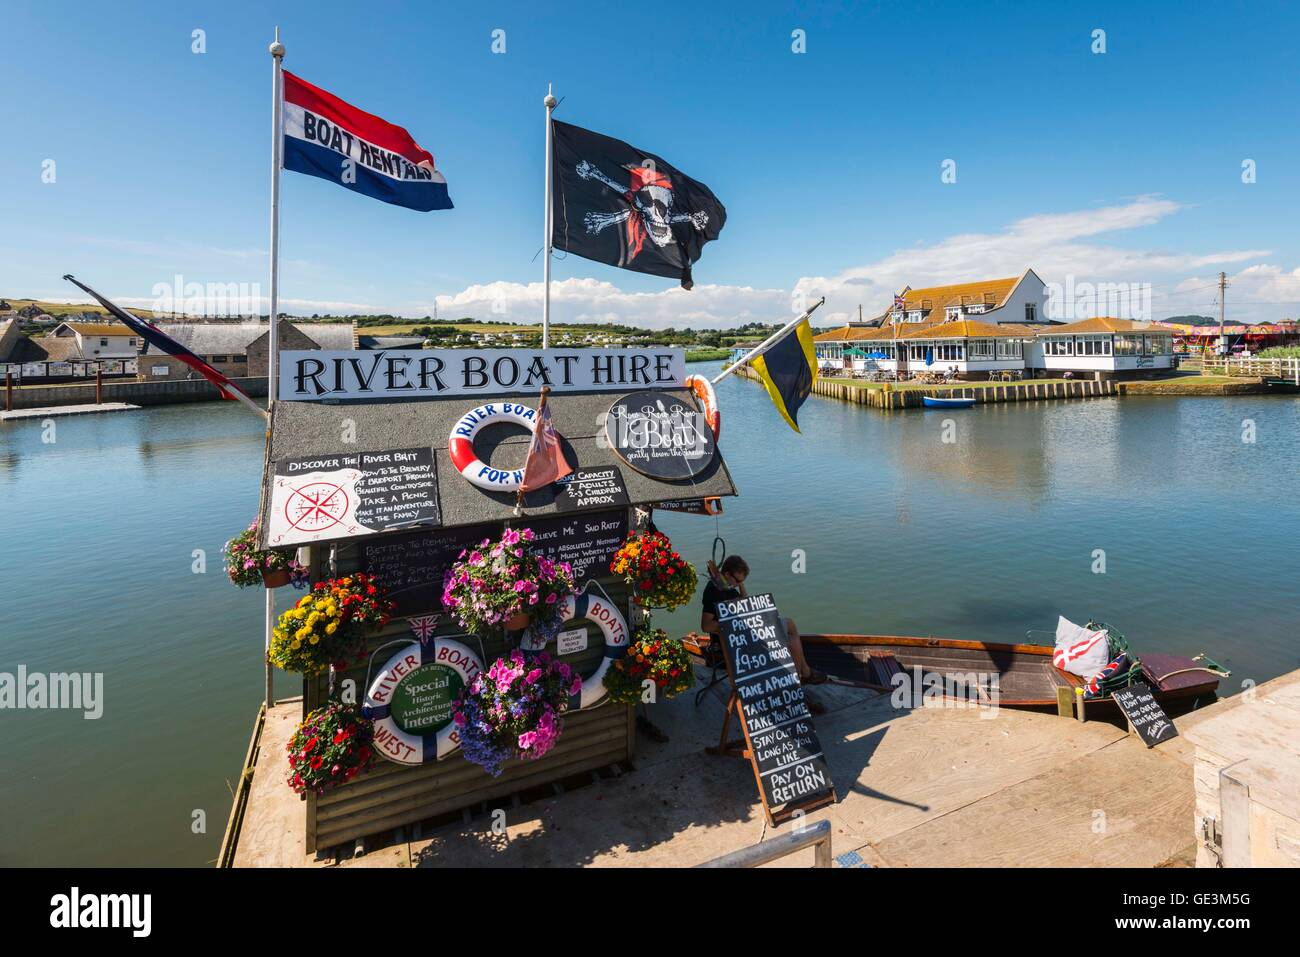 West Bay, Dorset, UK. 22nd July 2016.  UK Weather.  Wall to wall sunshine and blue sky above the Rive Boat Hire - Stock Image